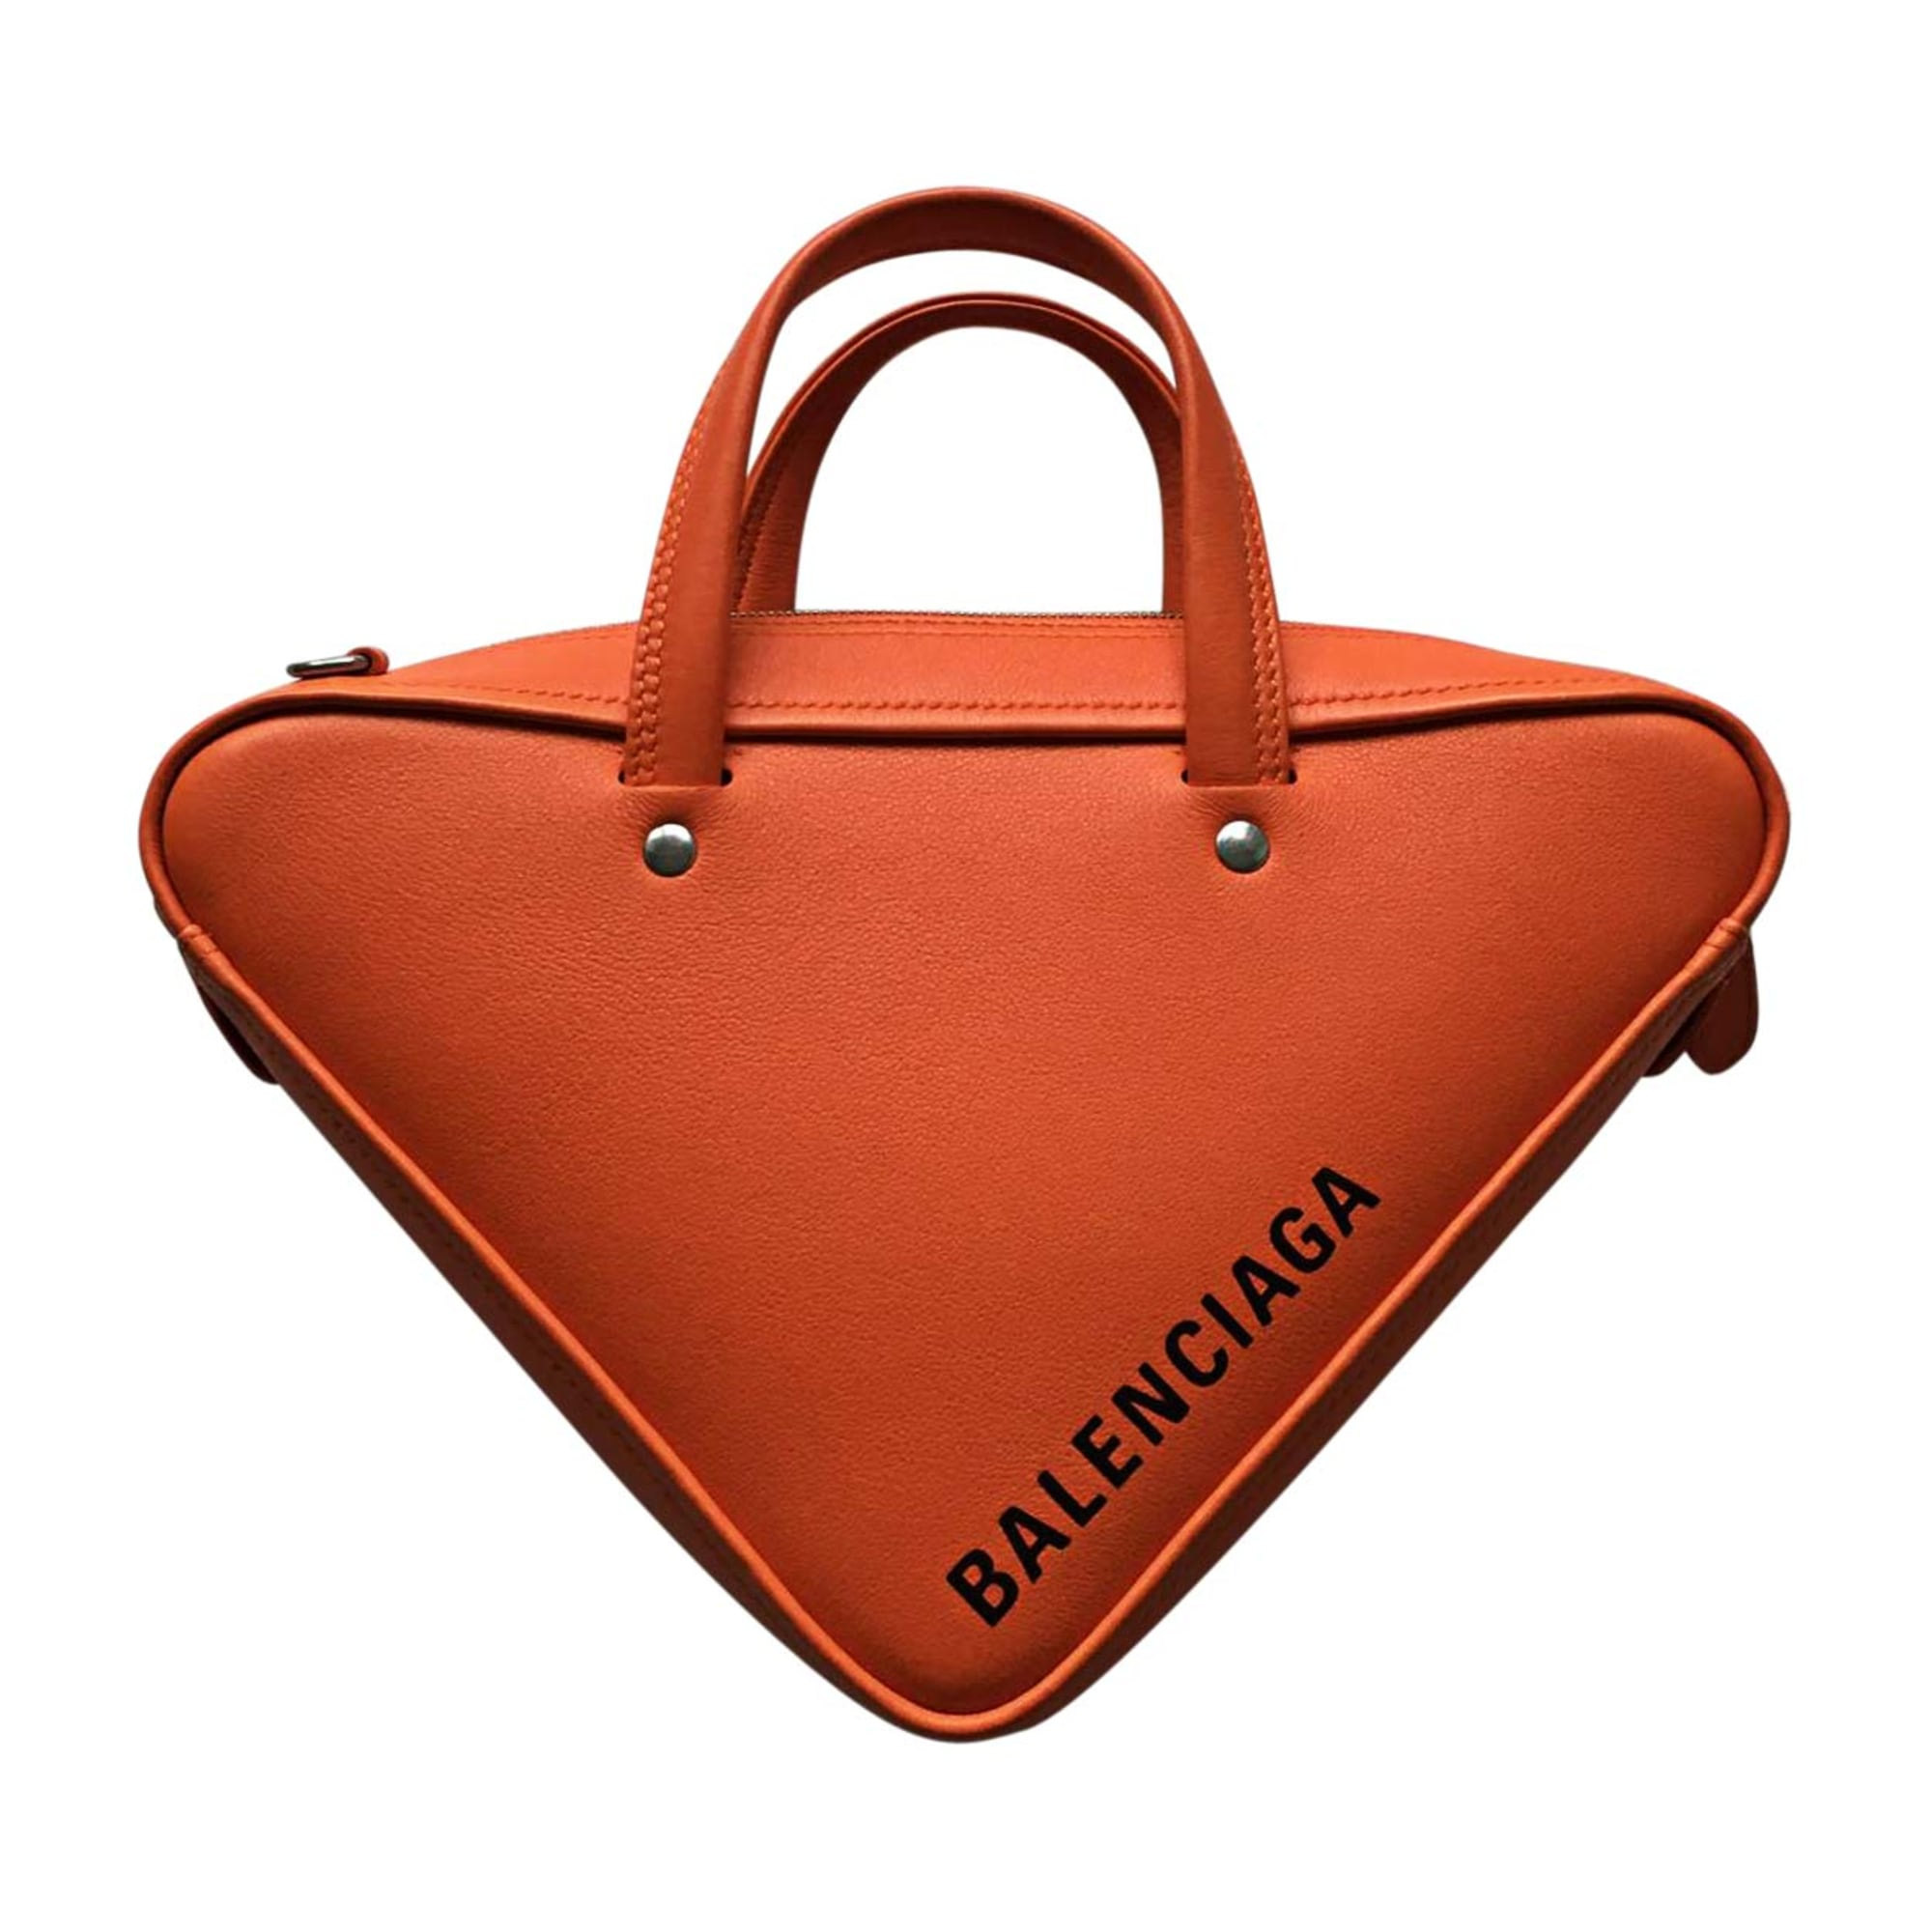 Sac à main en cuir BALENCIAGA Orange